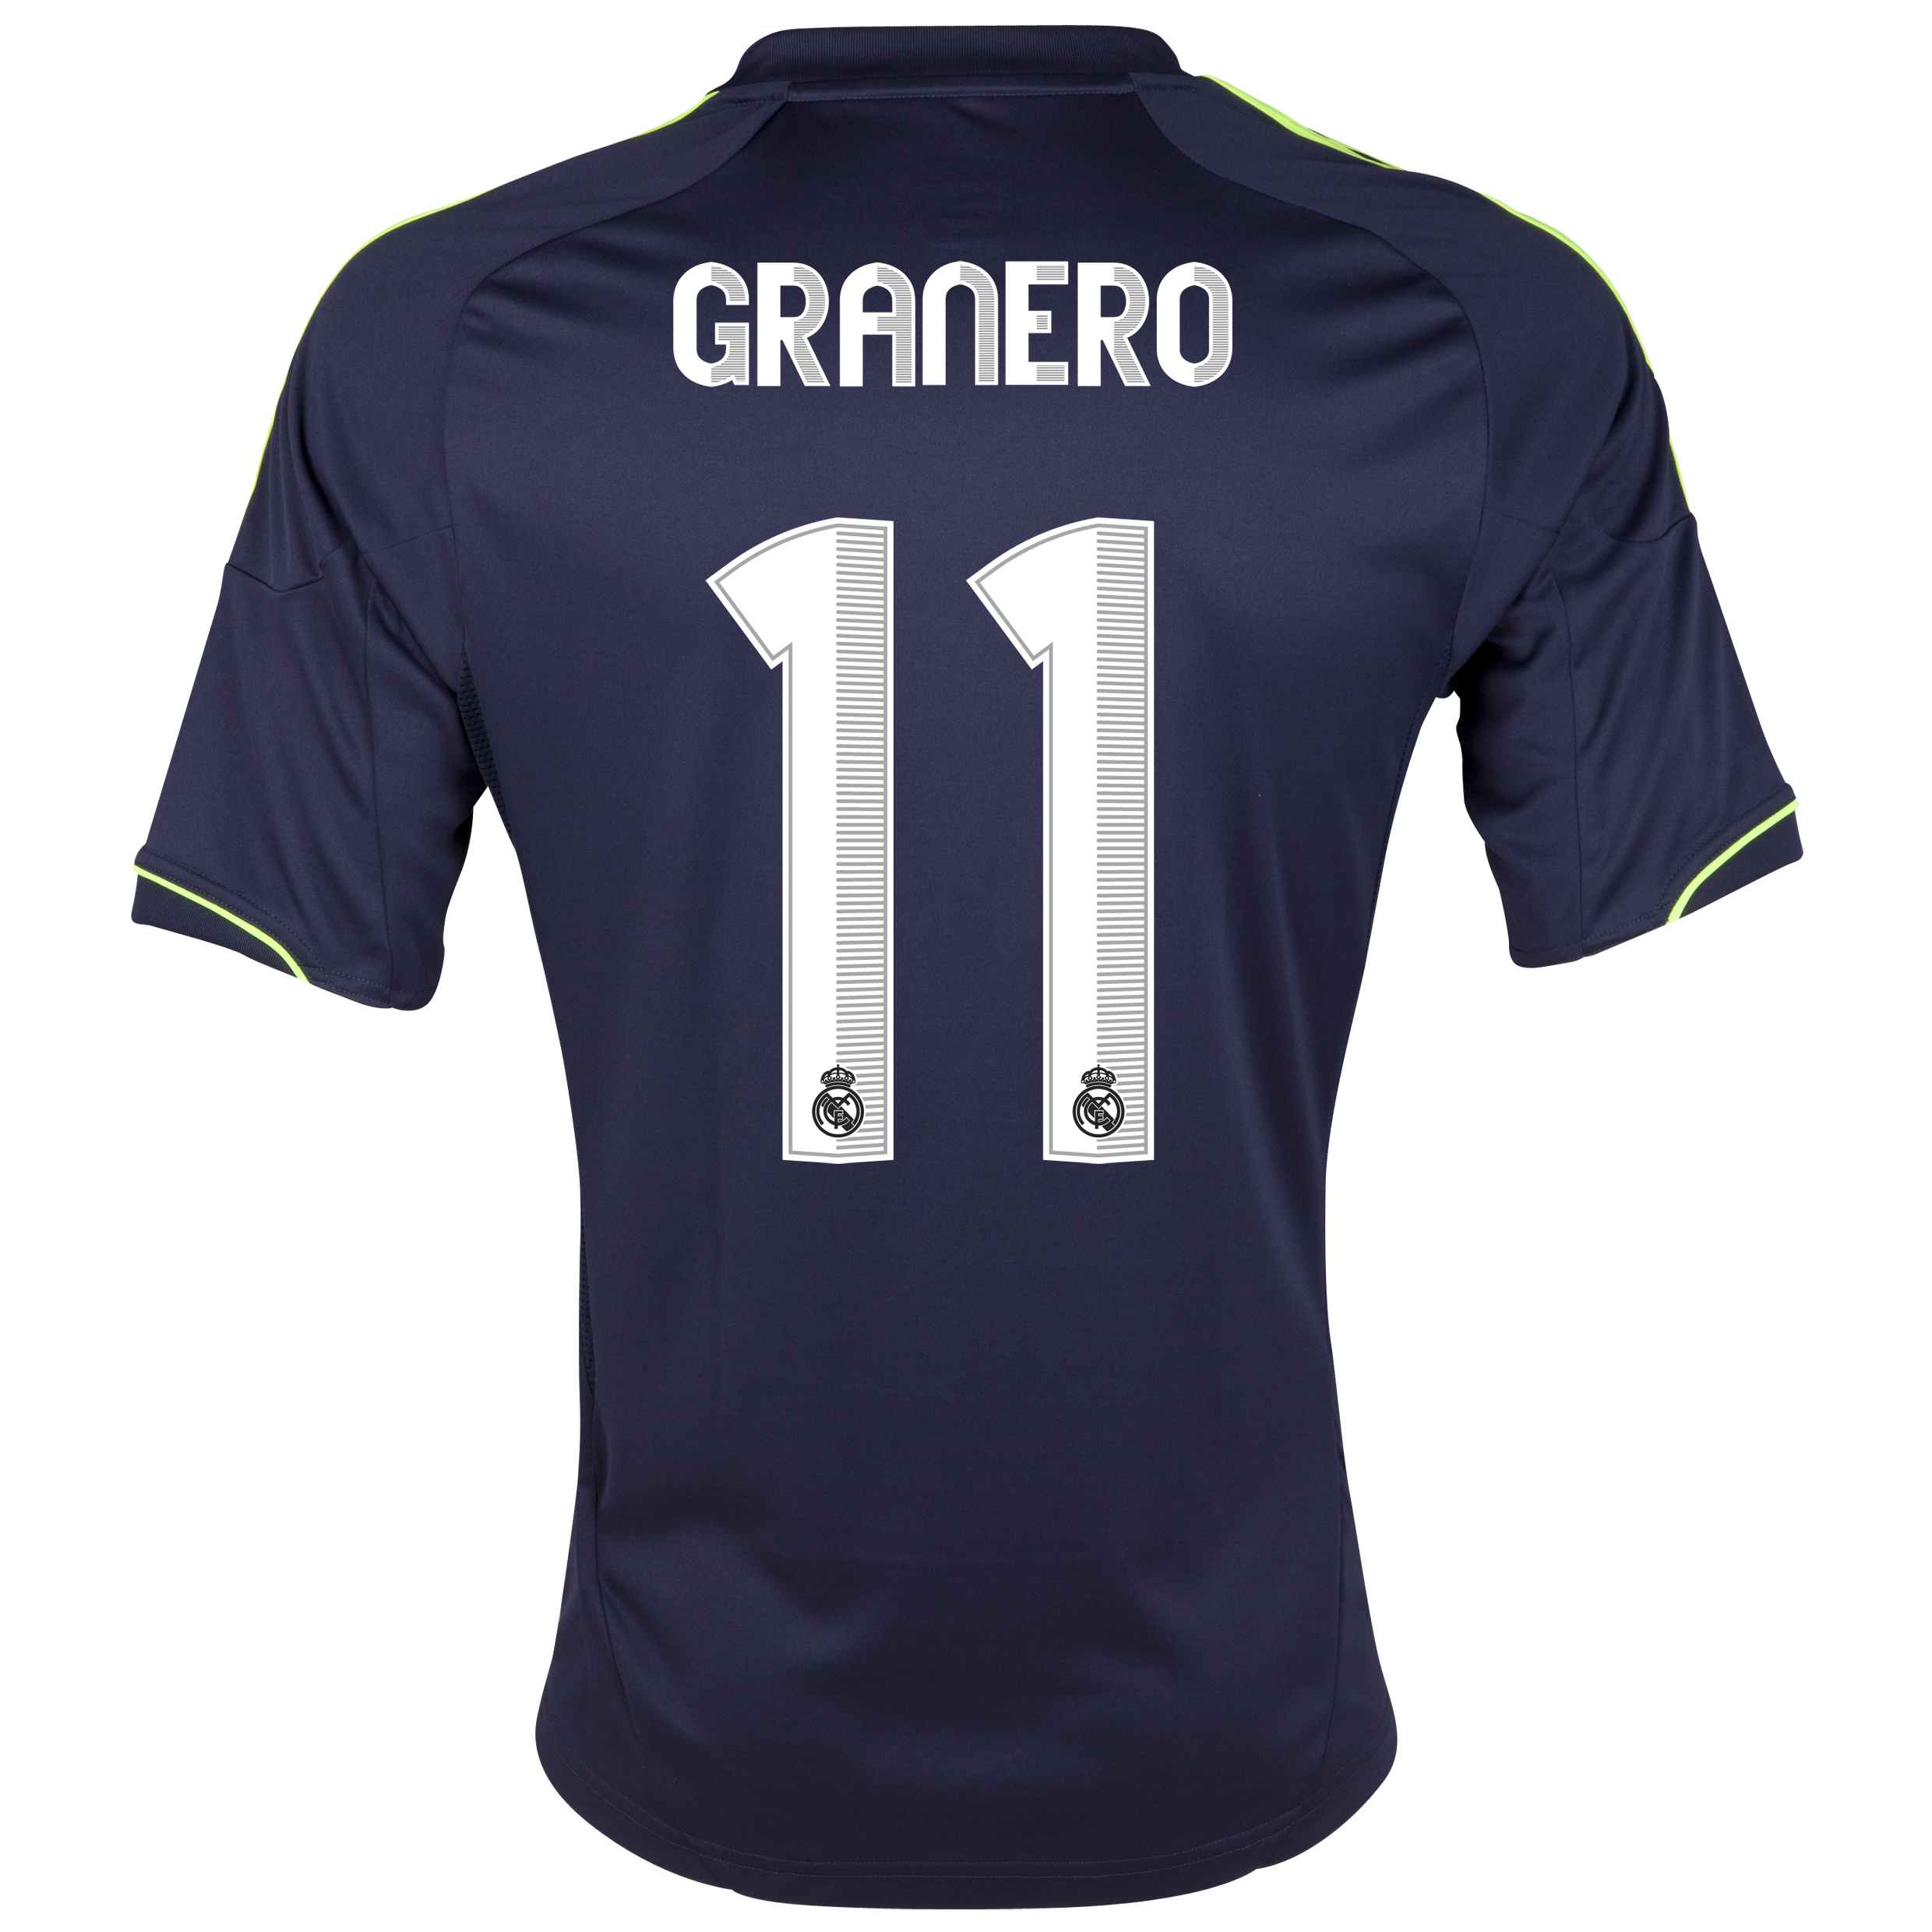 Real Madrid Away Shirt 2012/13 with Granero 11 printing